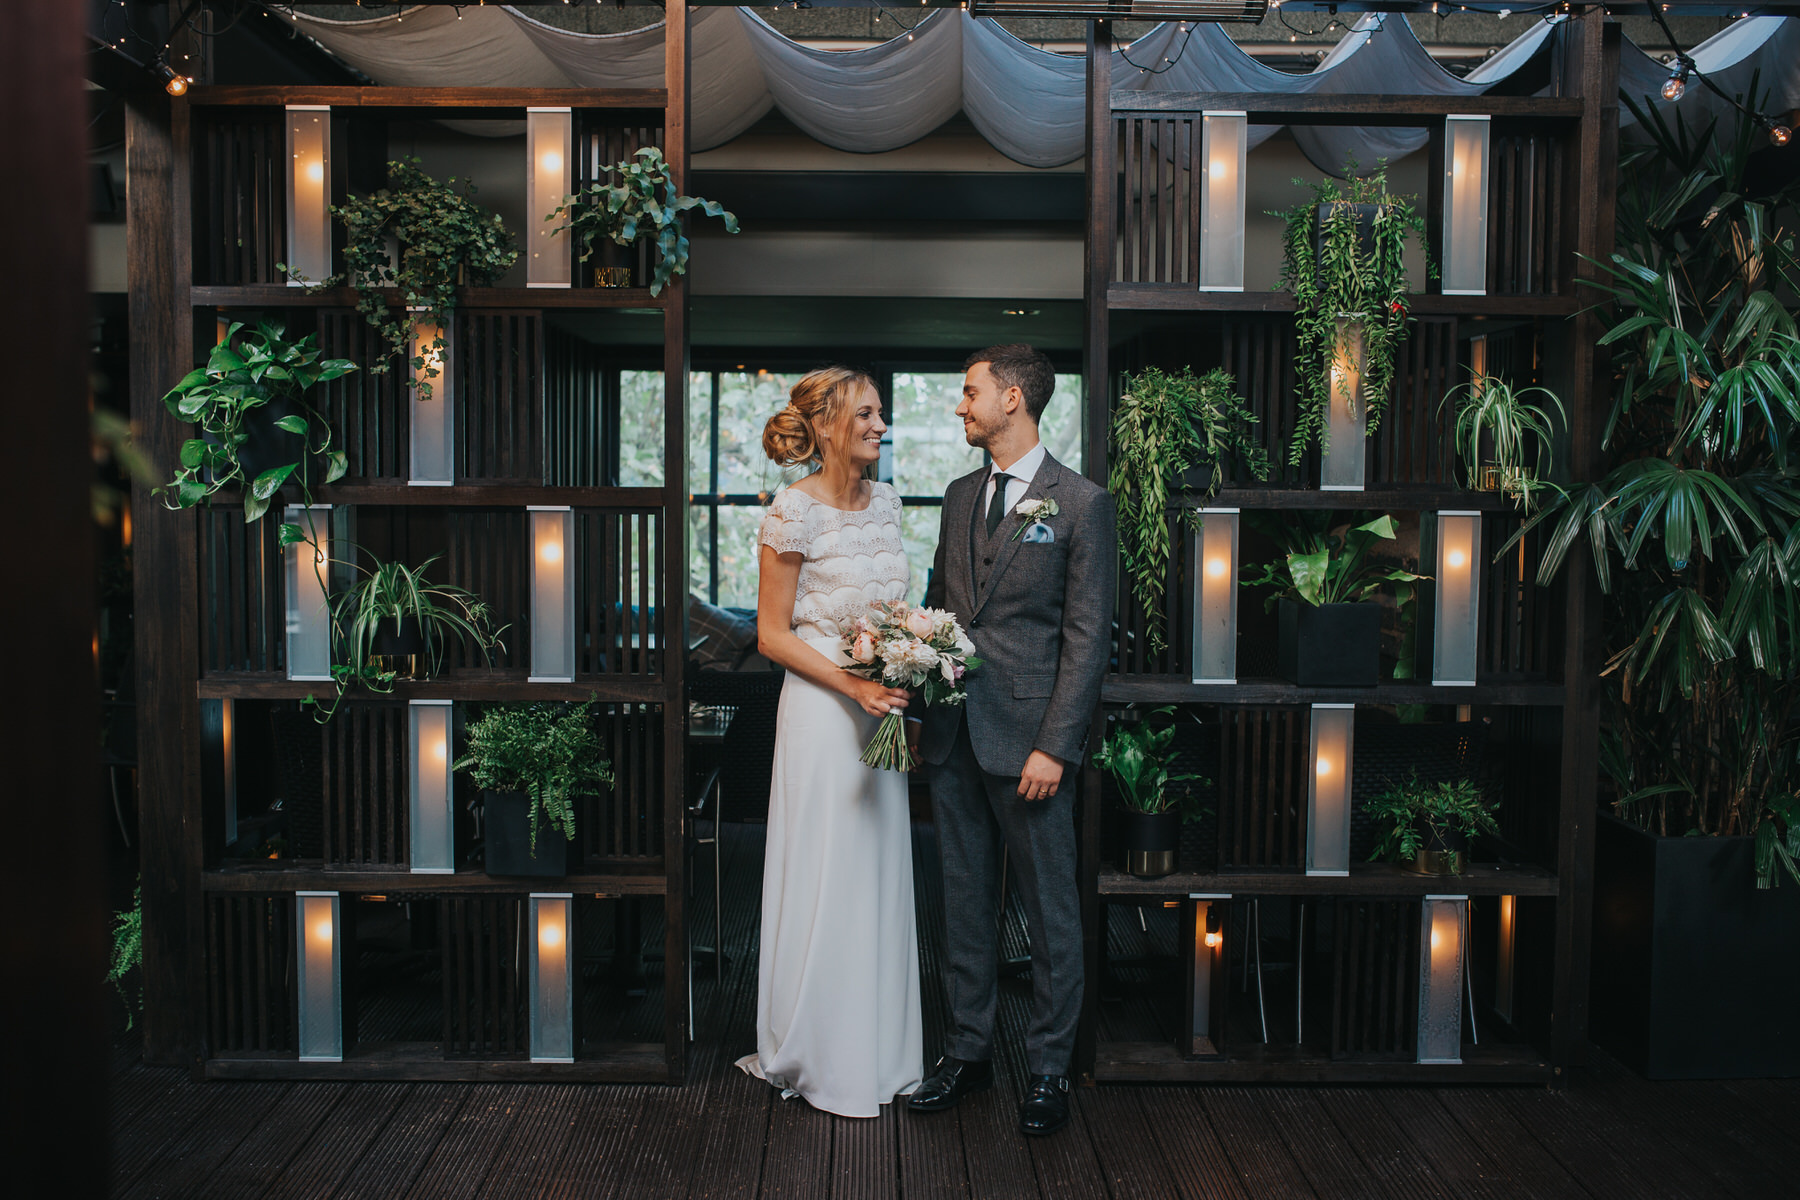 Century Club terrace bride groom poses surrounded by plants.jpg